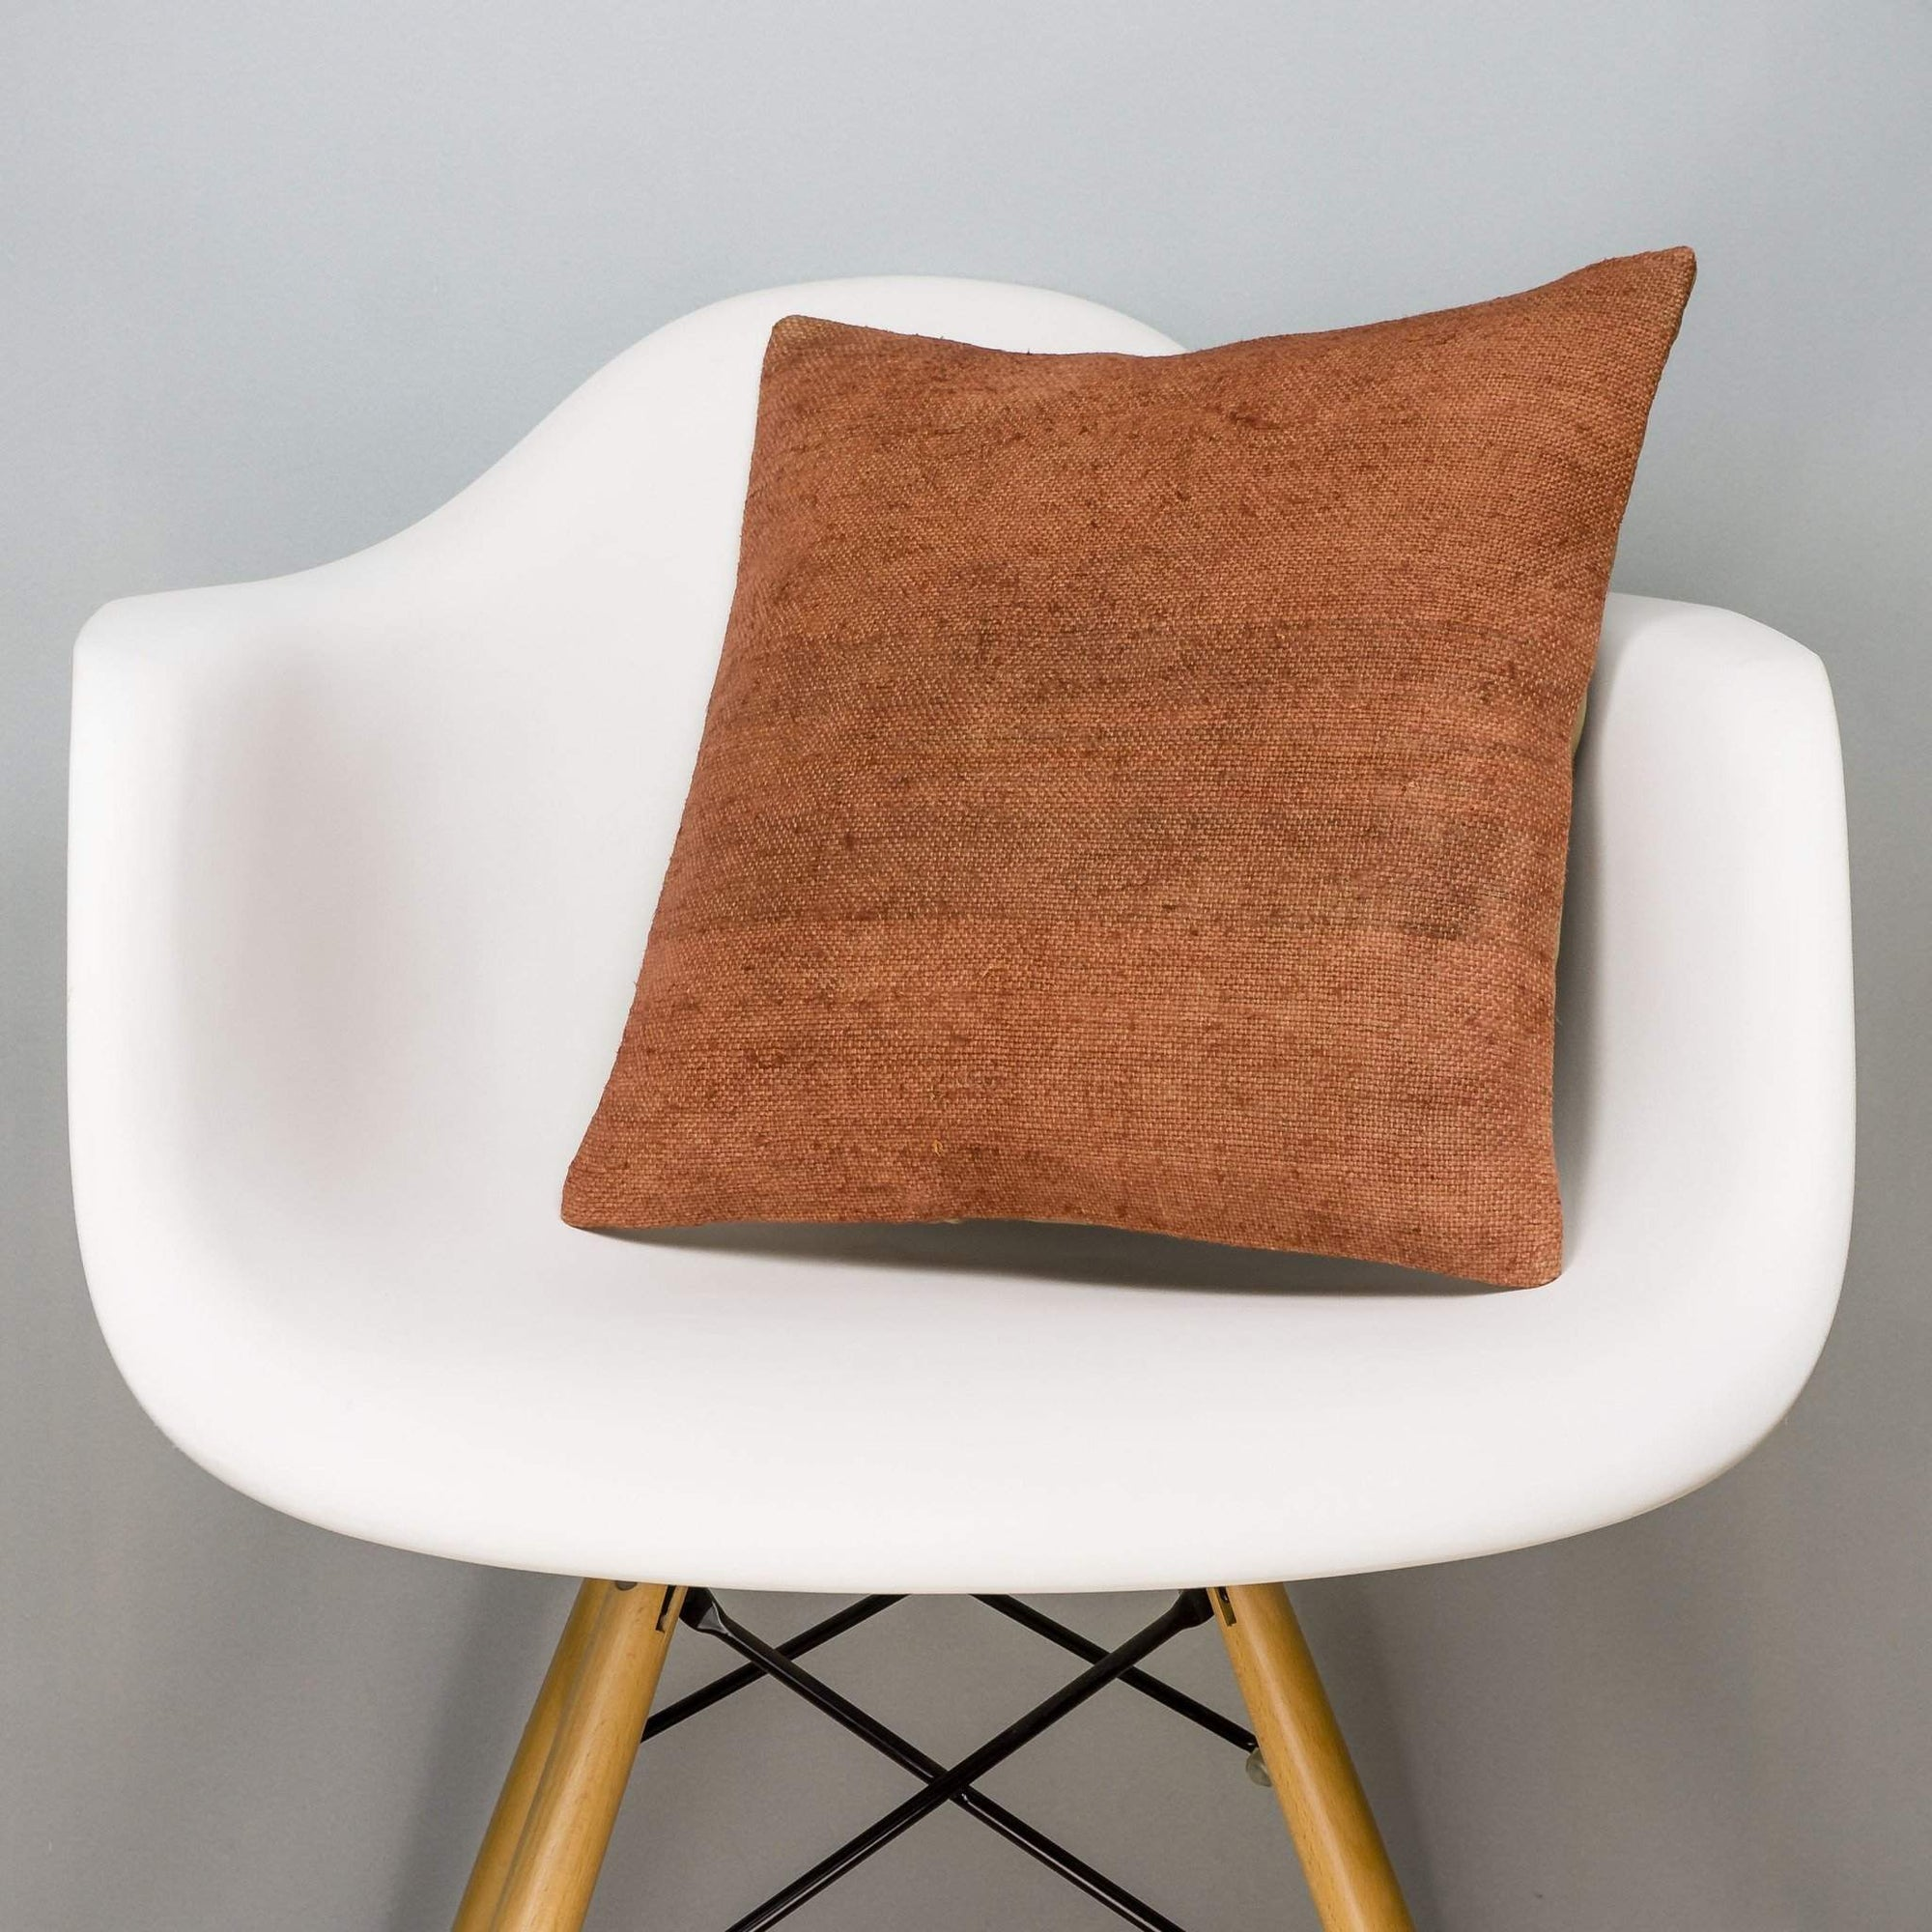 Plain Brown Kilim Pillow Cover 16x16 2923 - kilimpillowstore